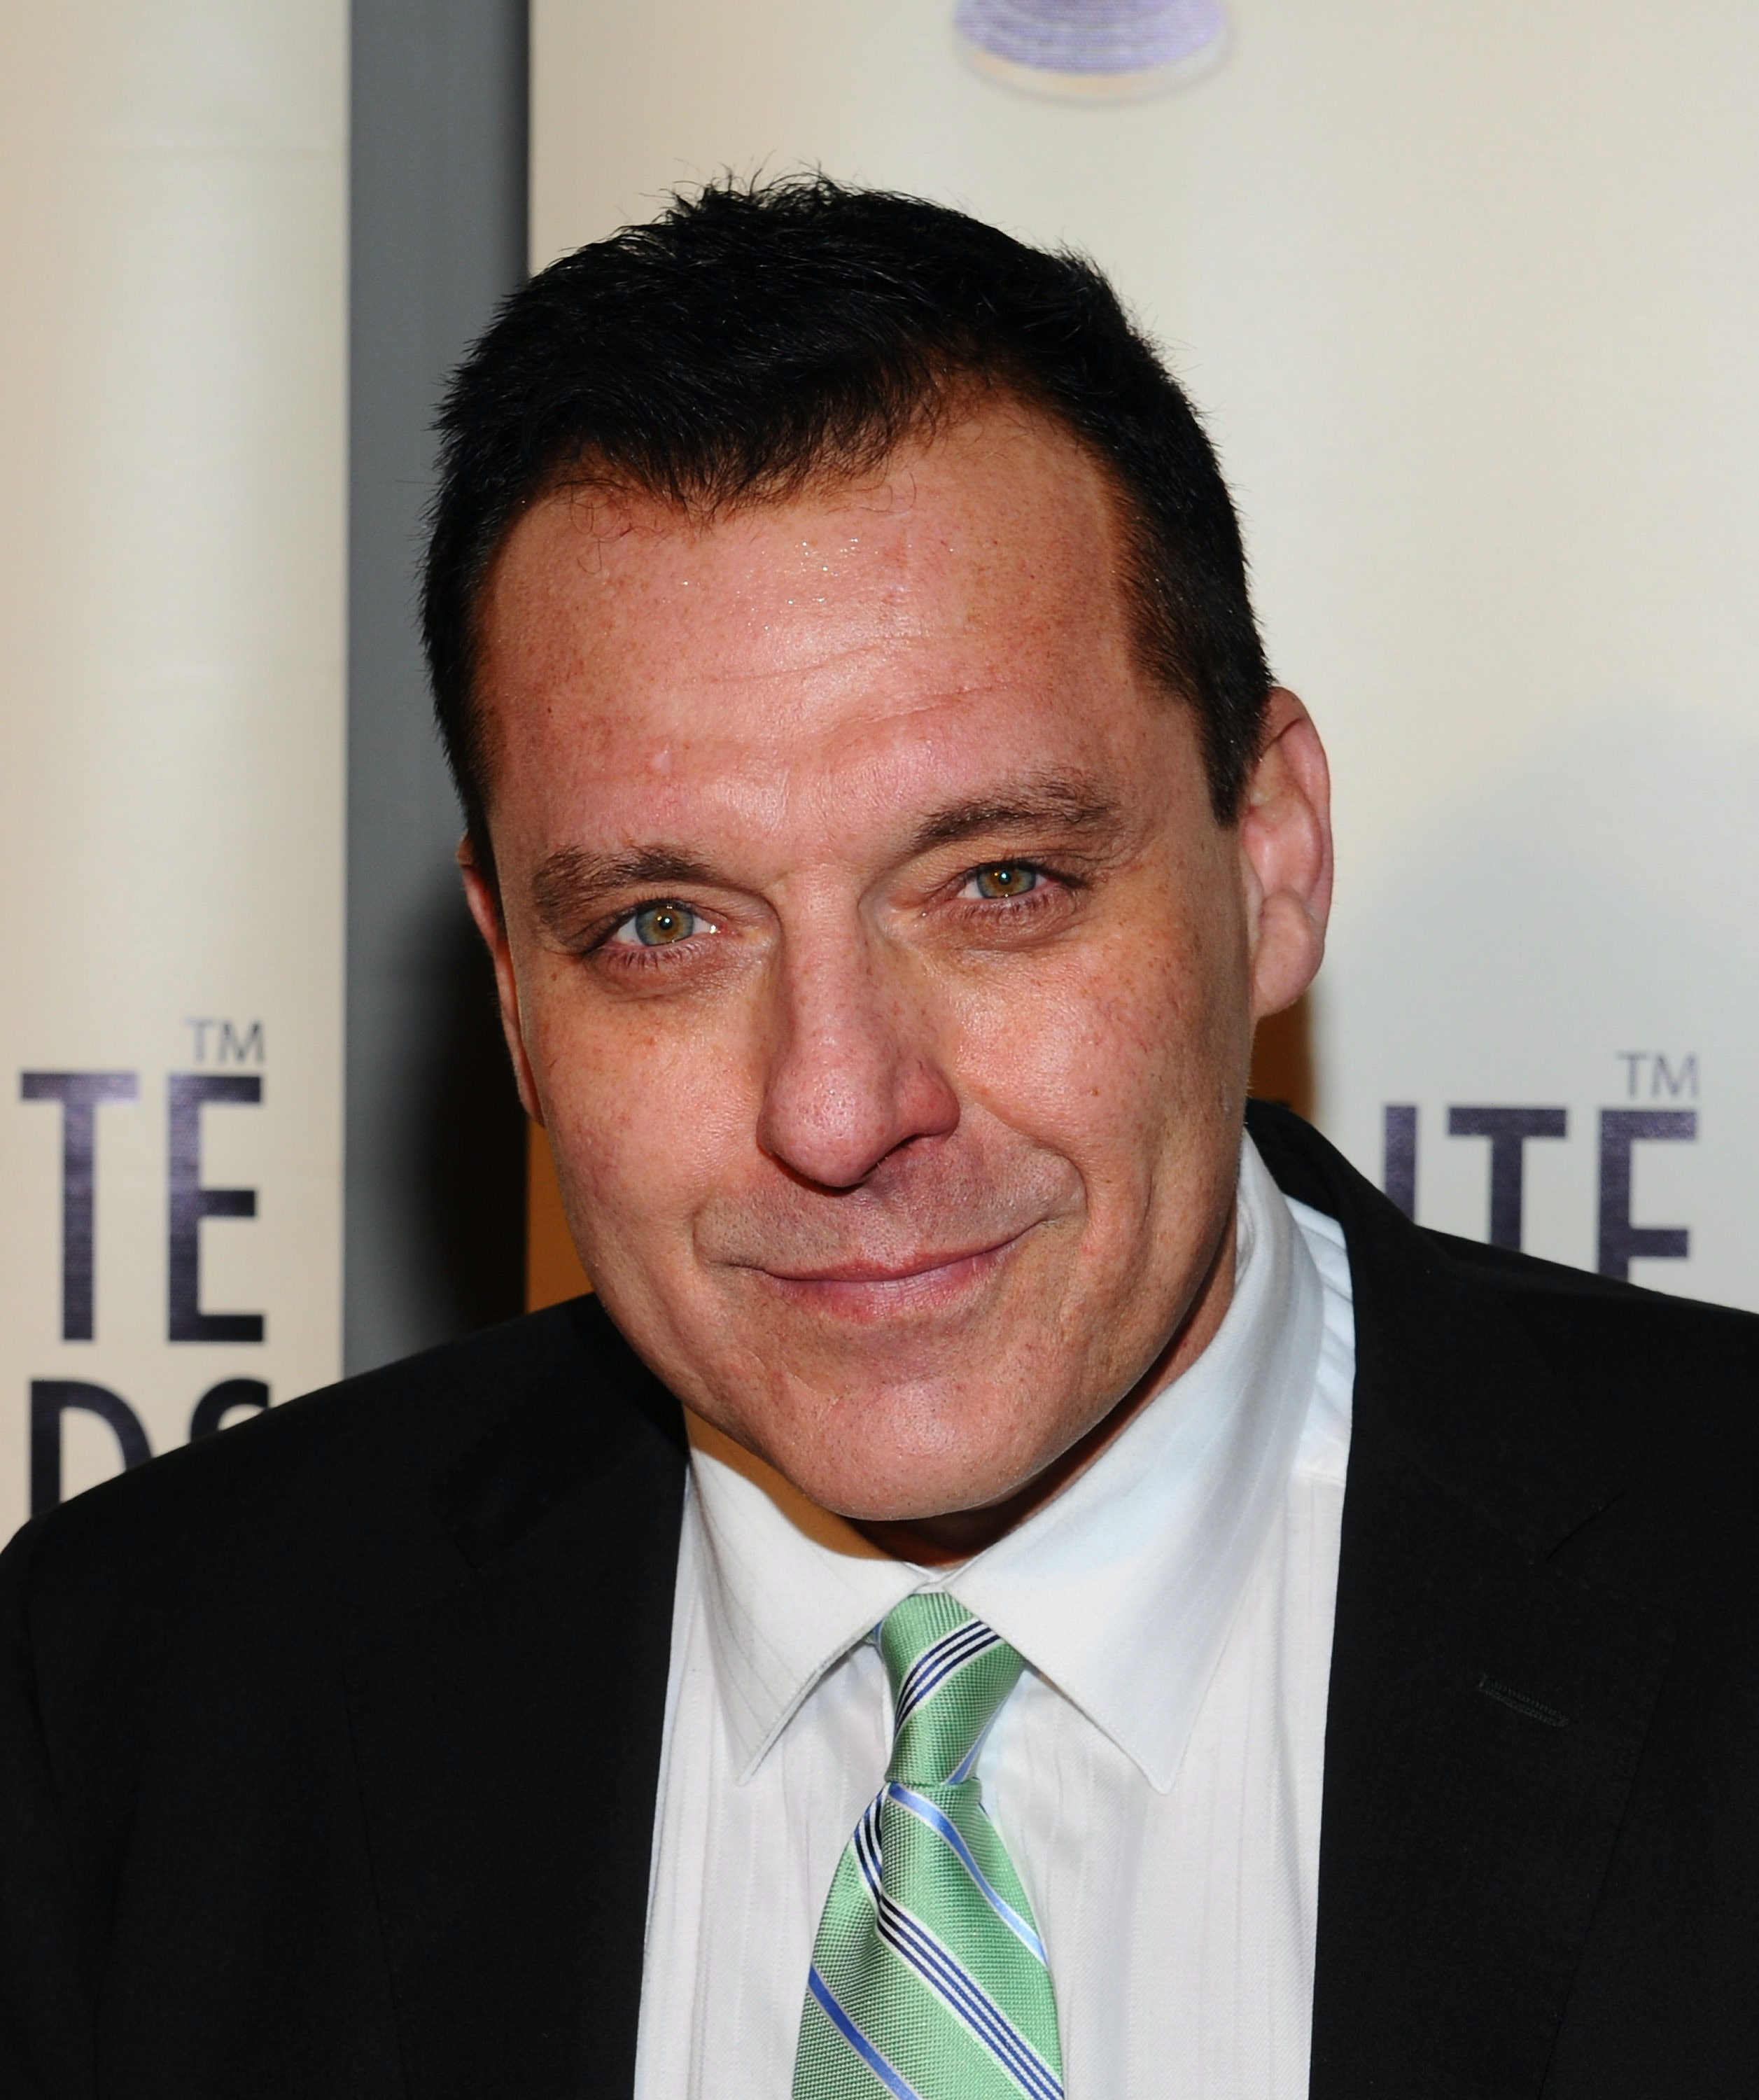 Tom Sizemore Was Removed From Film Set For Alleged Sexual Assault